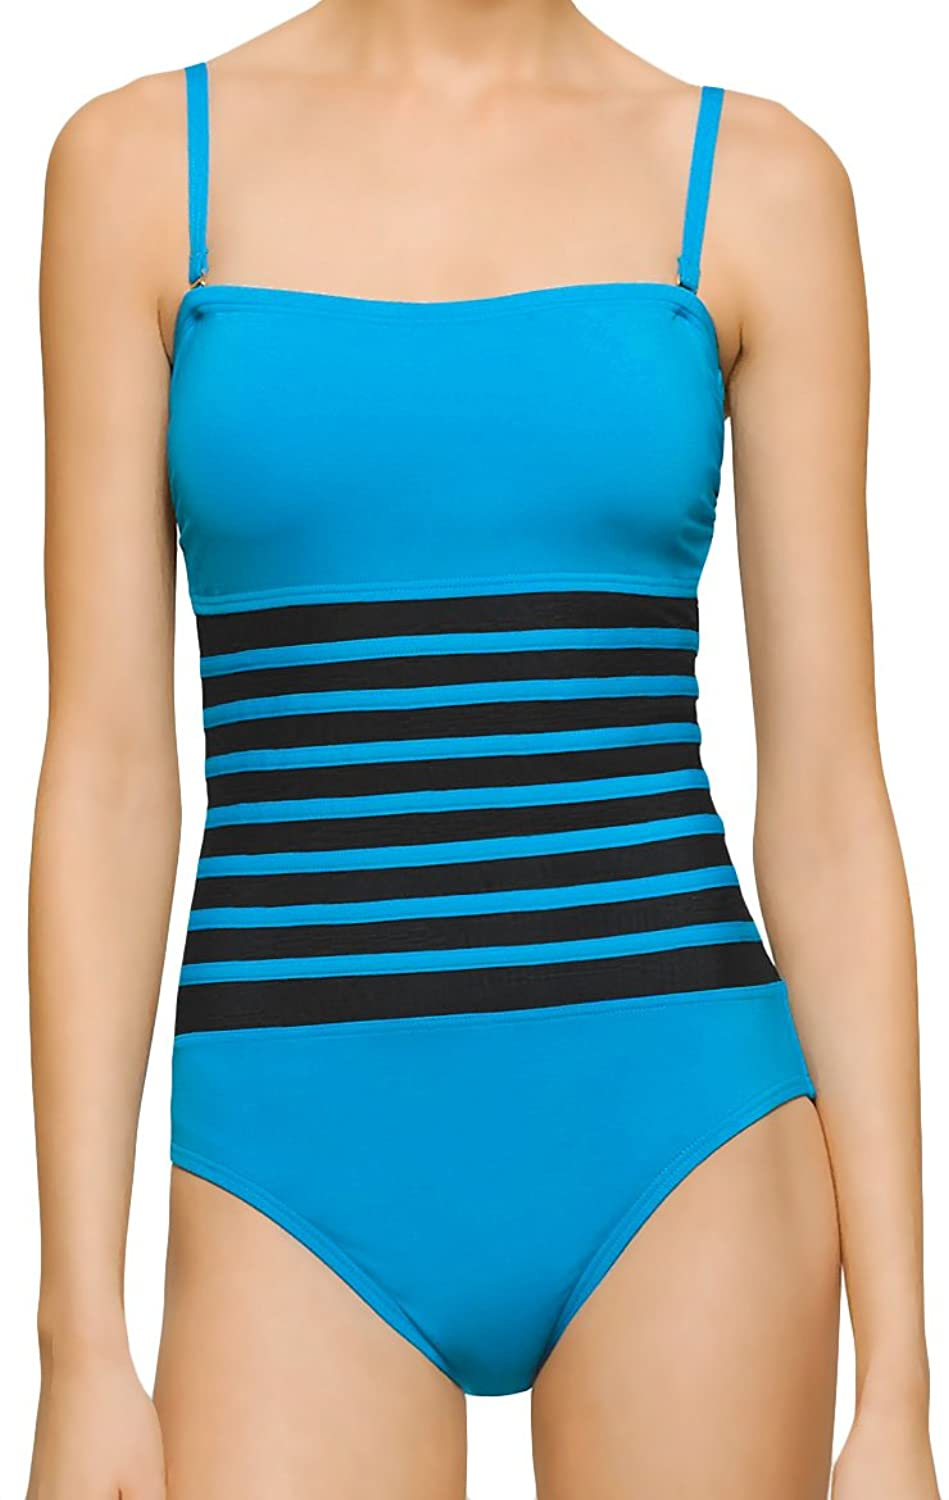 de4e7f6a42c0e One Piece Bathing Suit with Strapless Style Neckline Comes with with 2  Detachable Adjustable Length Shoulder Straps Sheer Mesh Black Banded Design  Across ...